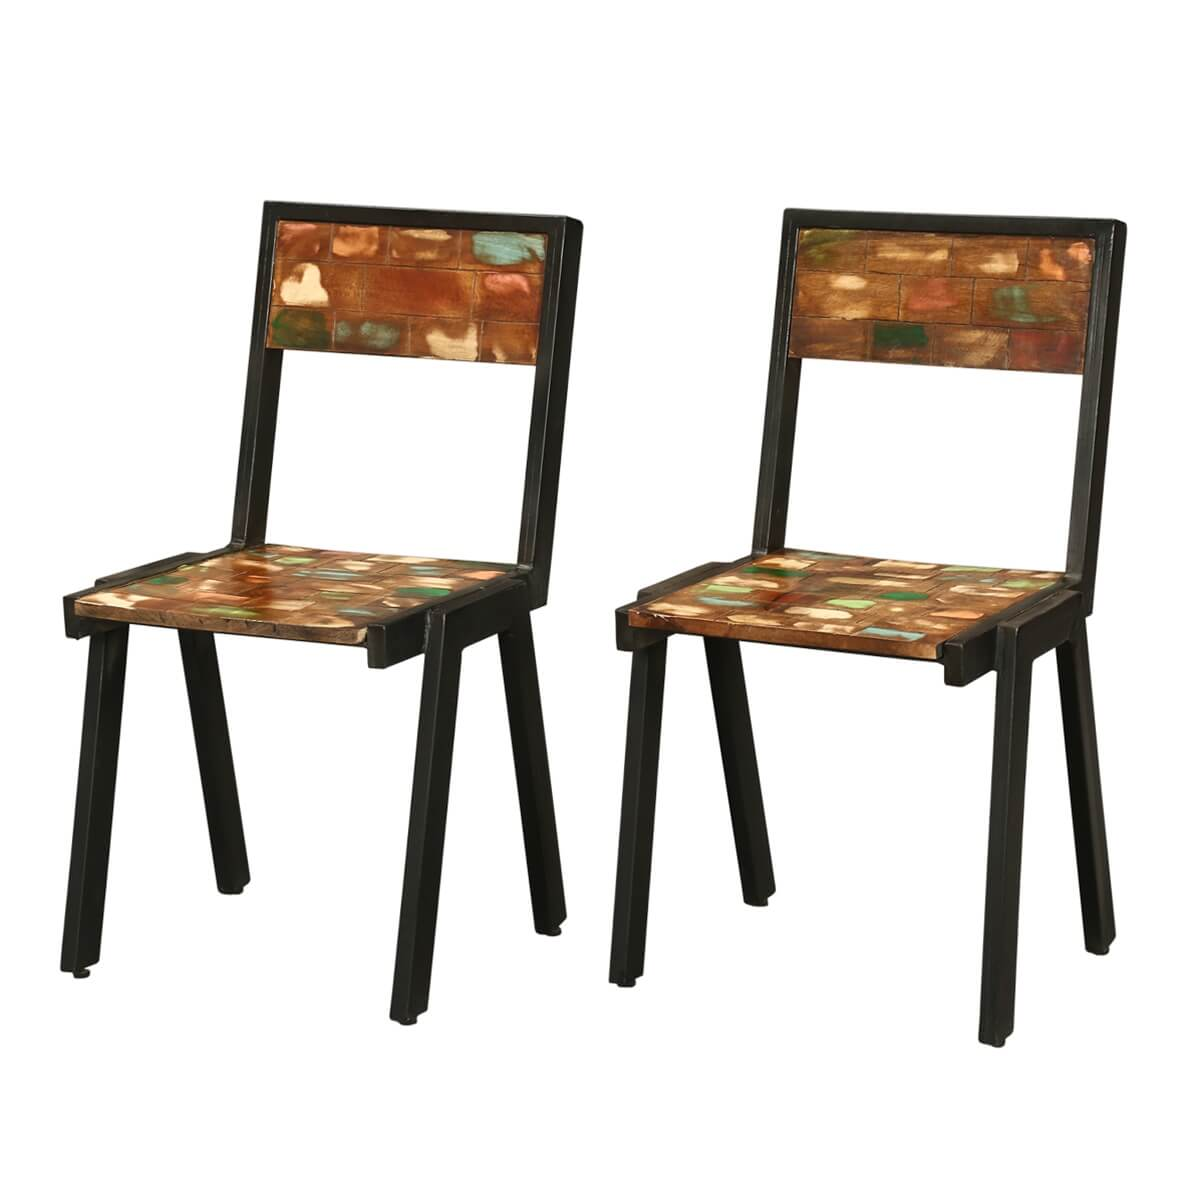 Iron Dining Chairs ~ Painted bricks reclaimed wood iron kitchen dining chair